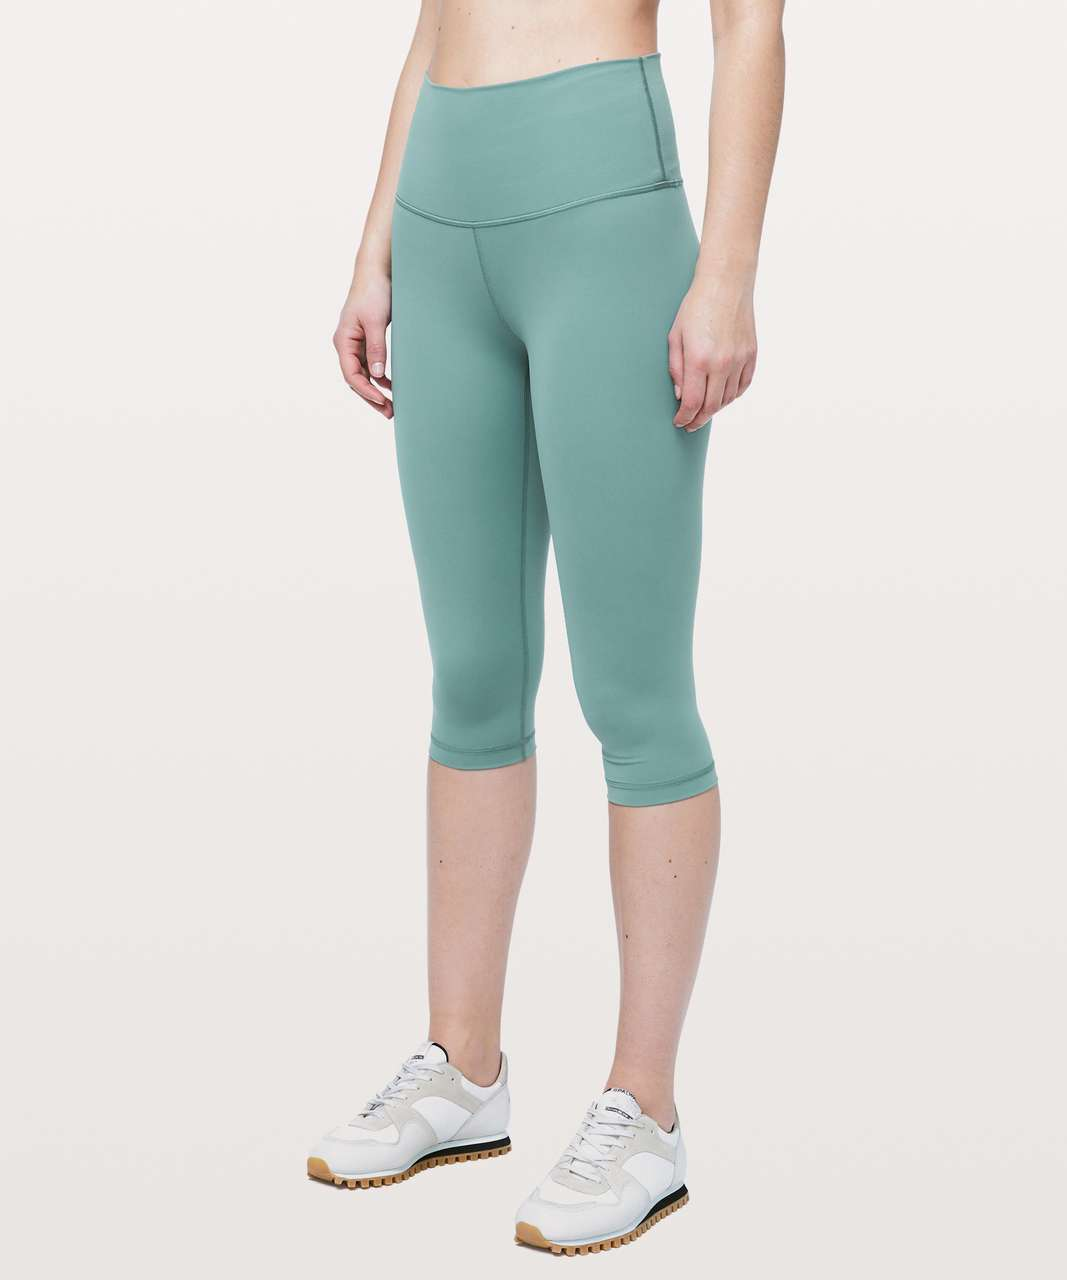 "Lululemon Wunder Under High-Rise 1/2 Tight Full-On Luxtreme 17"" - Frosted Pine"